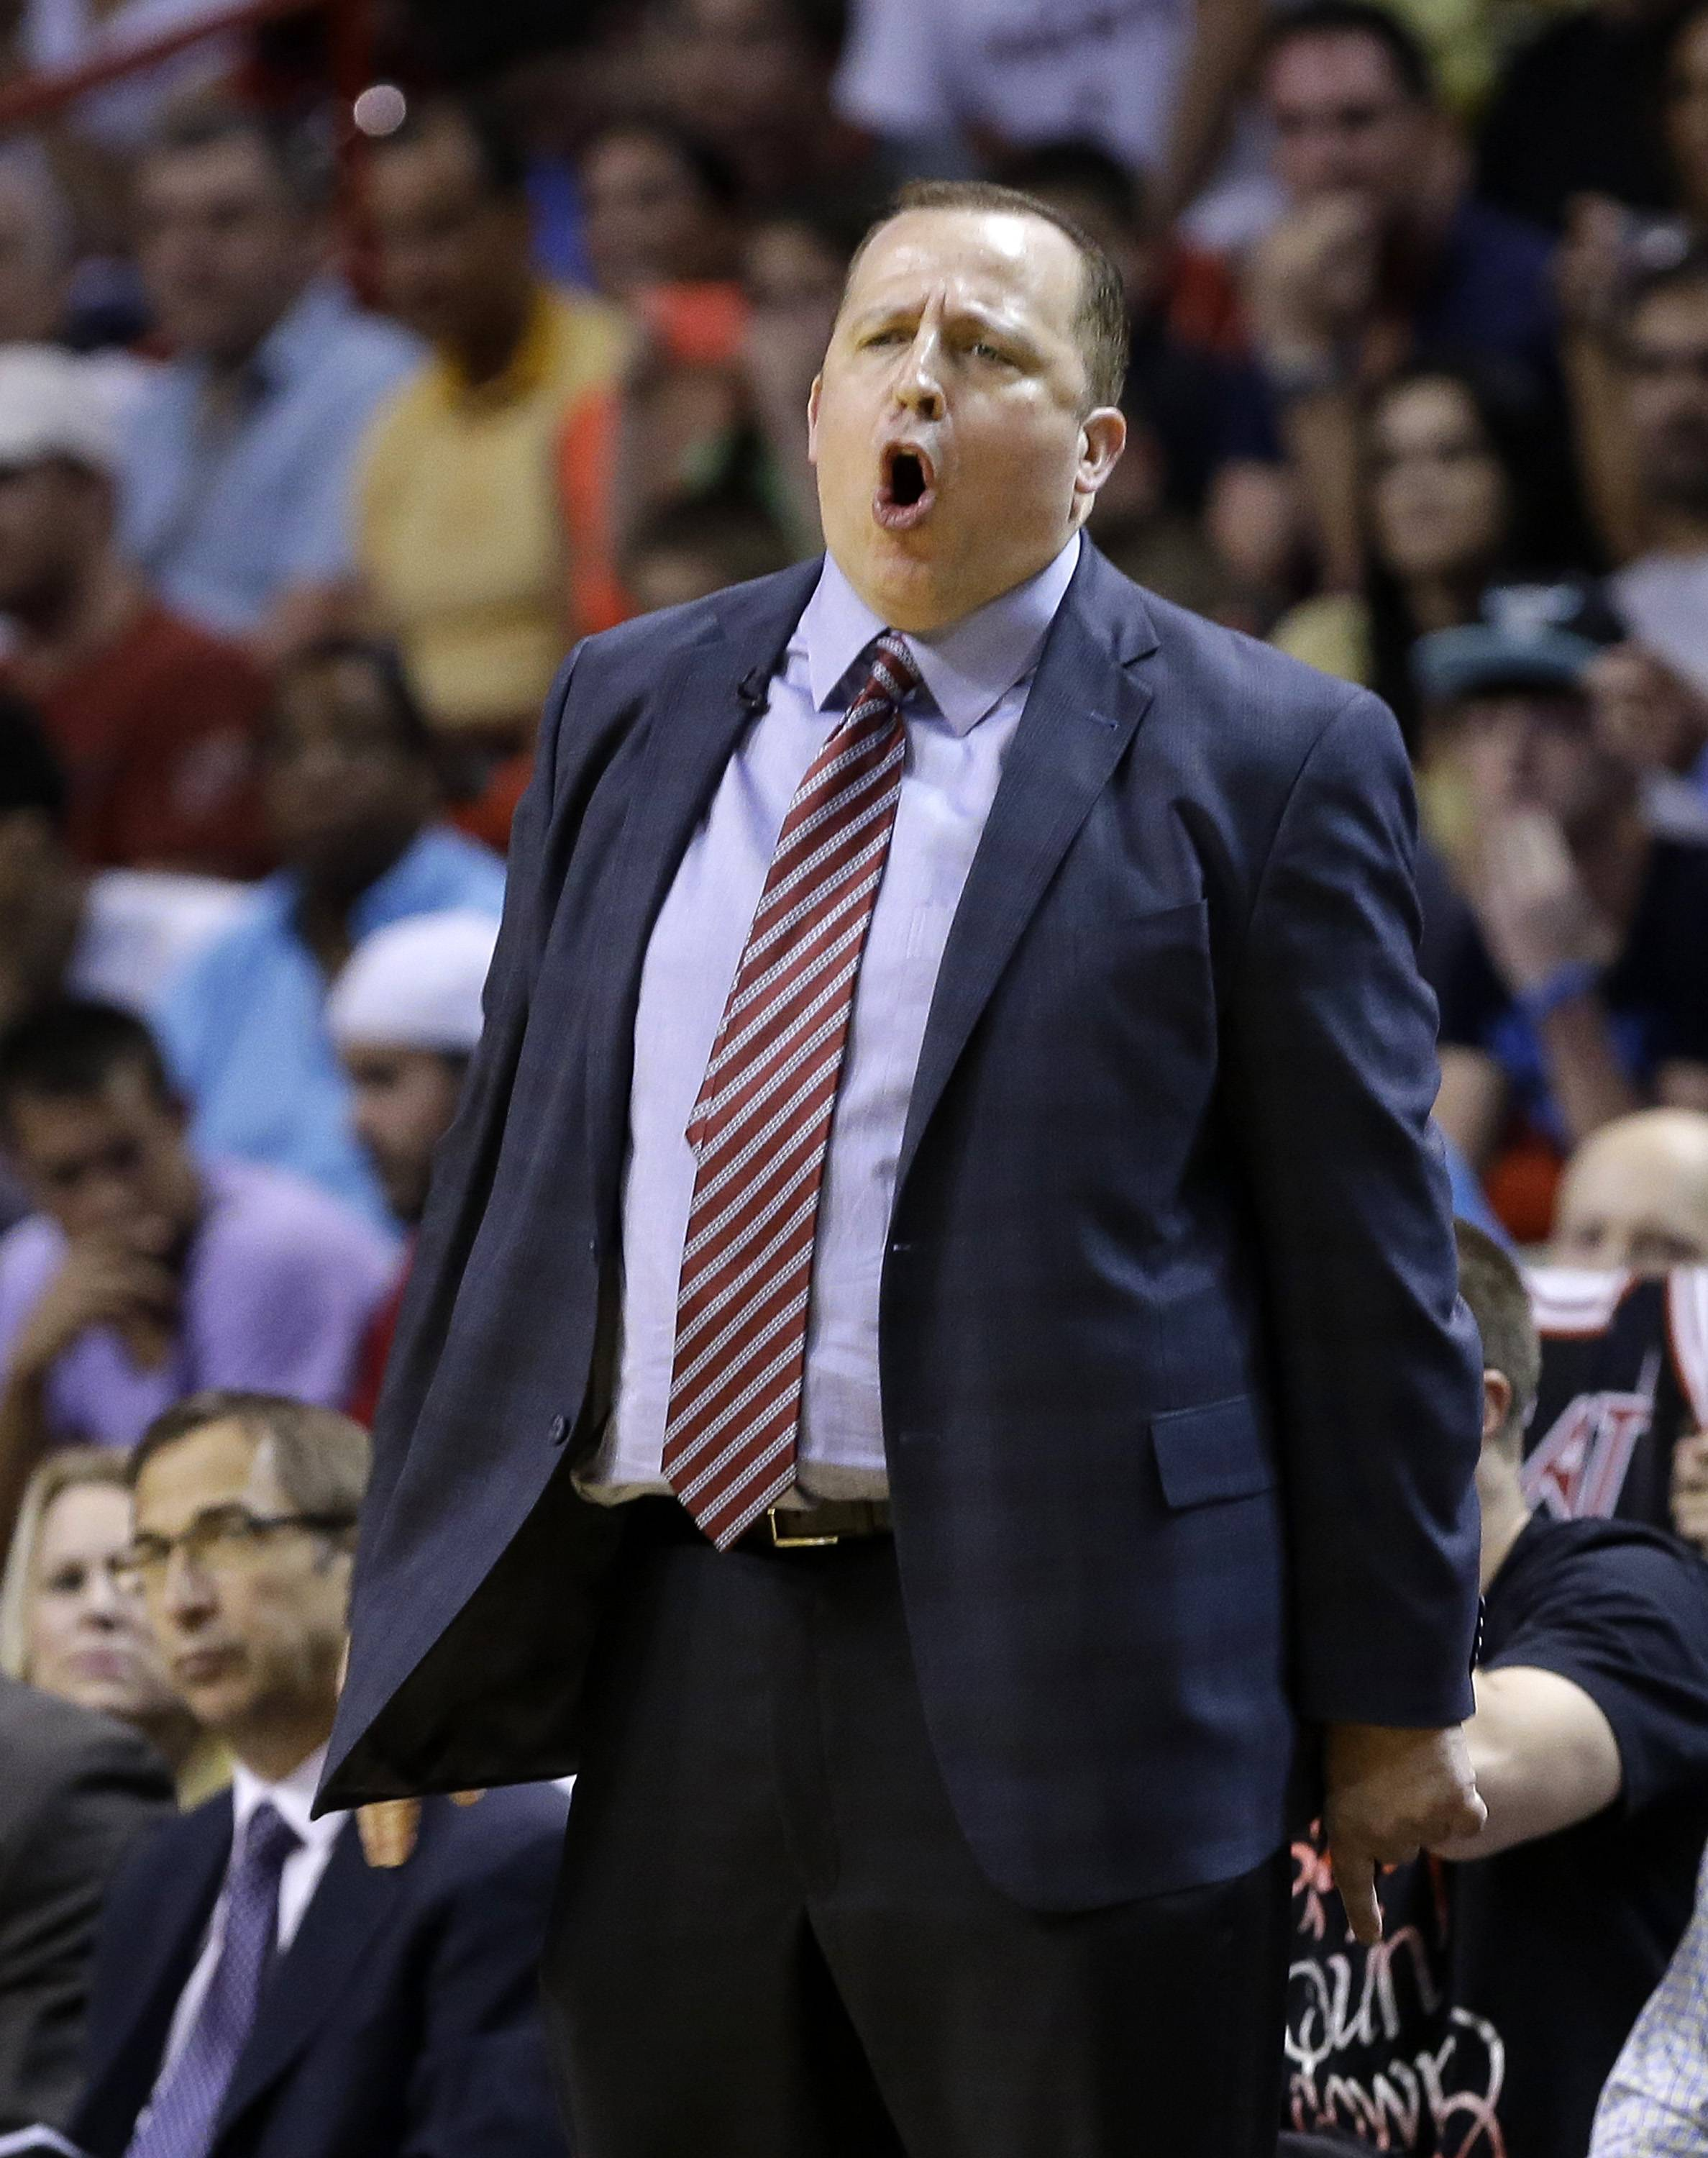 Bulls coach Tom Thibodeau has a few words on the sideline during Sunday's loss to the Heat at Miami.